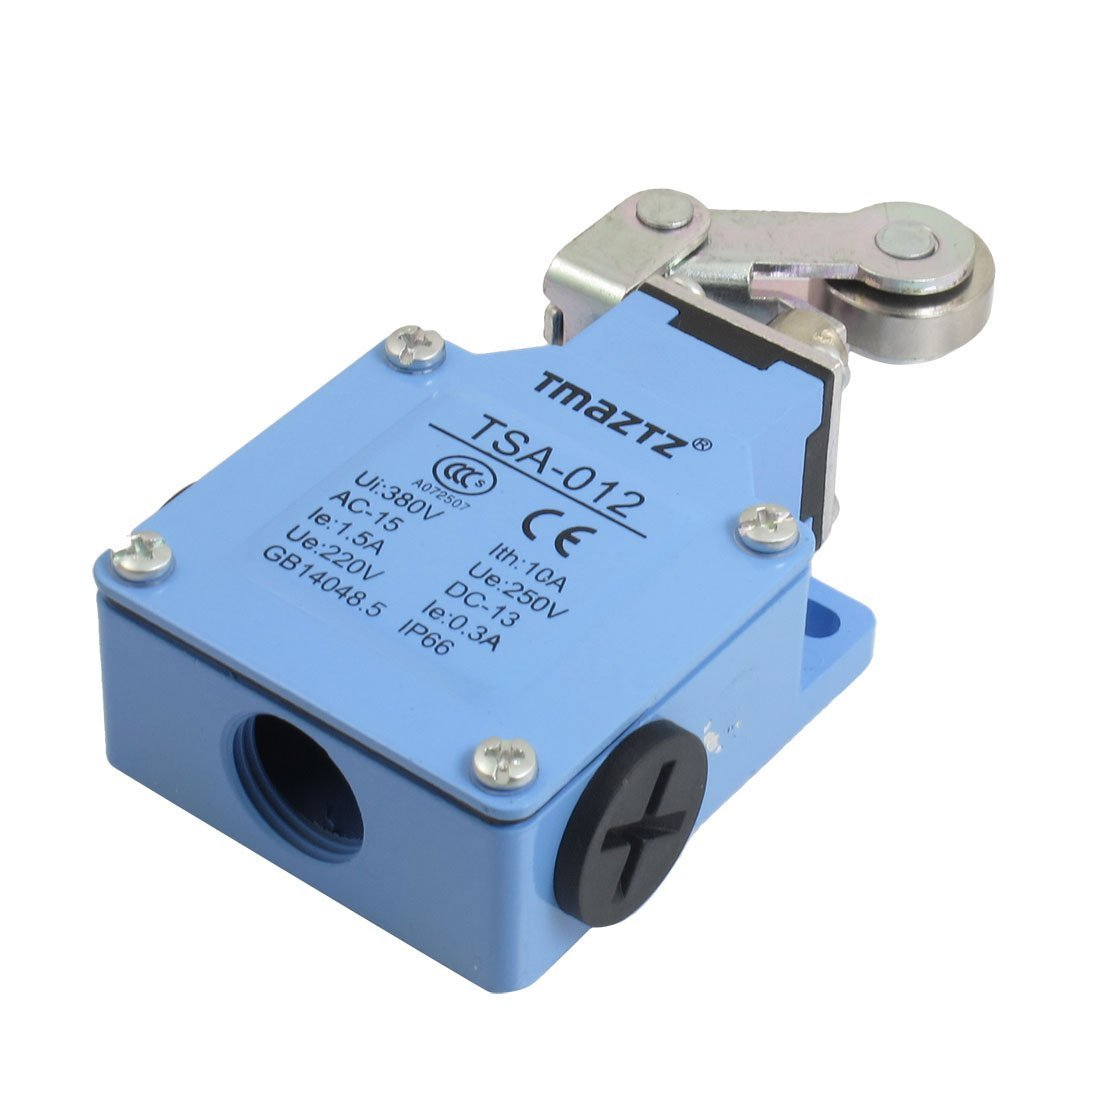 Baomain Limit switch TSA-012 Rolling Cam Momentary 1NO 1NC 250VAC 1.5A 220VDC 0.3A by Baomain (Image #1)